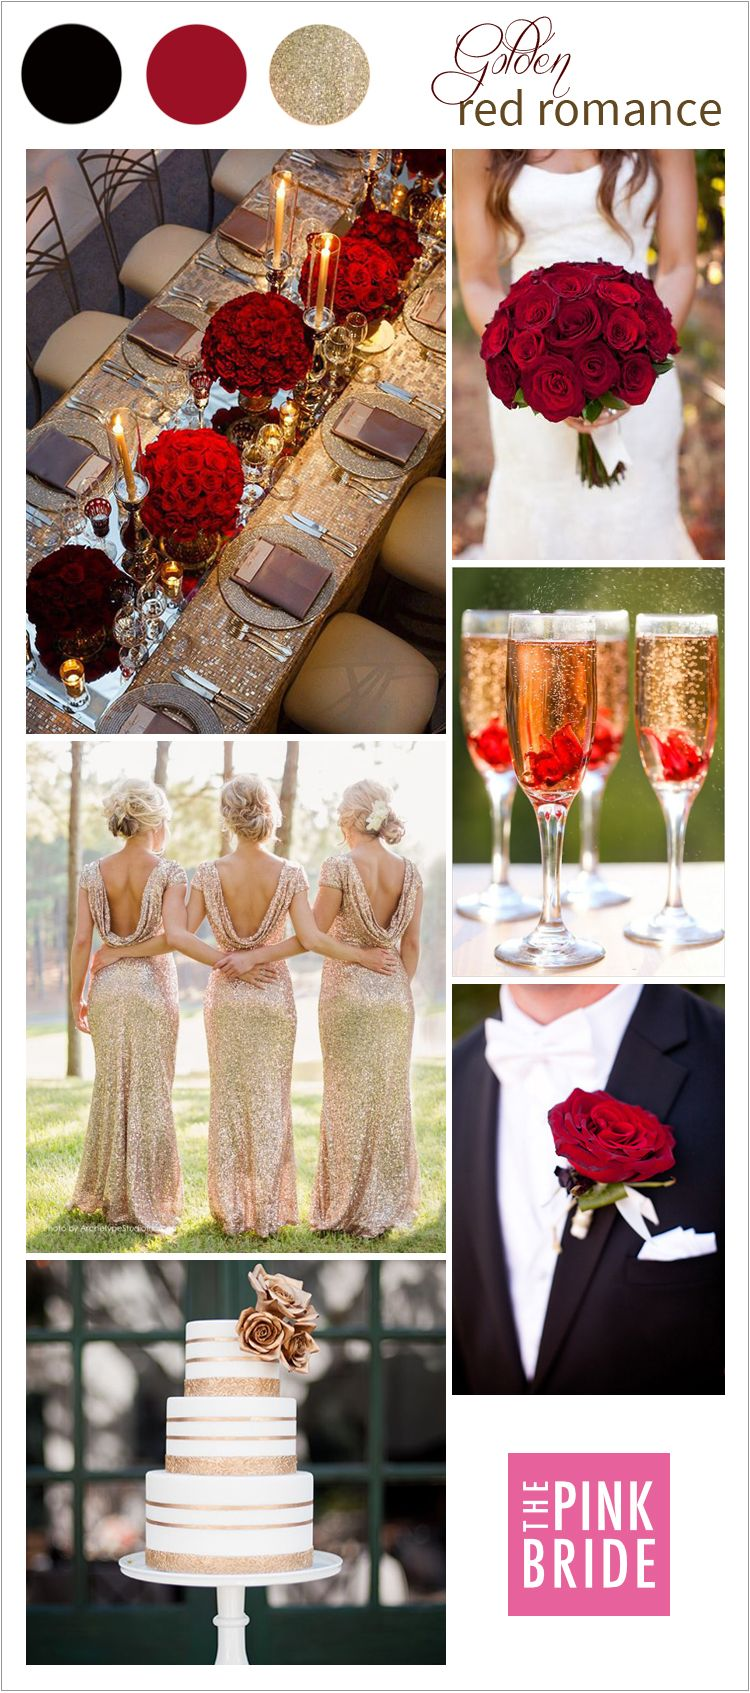 Wedding Color Board: Golden Red Romance | Classic weddings, Gold ...